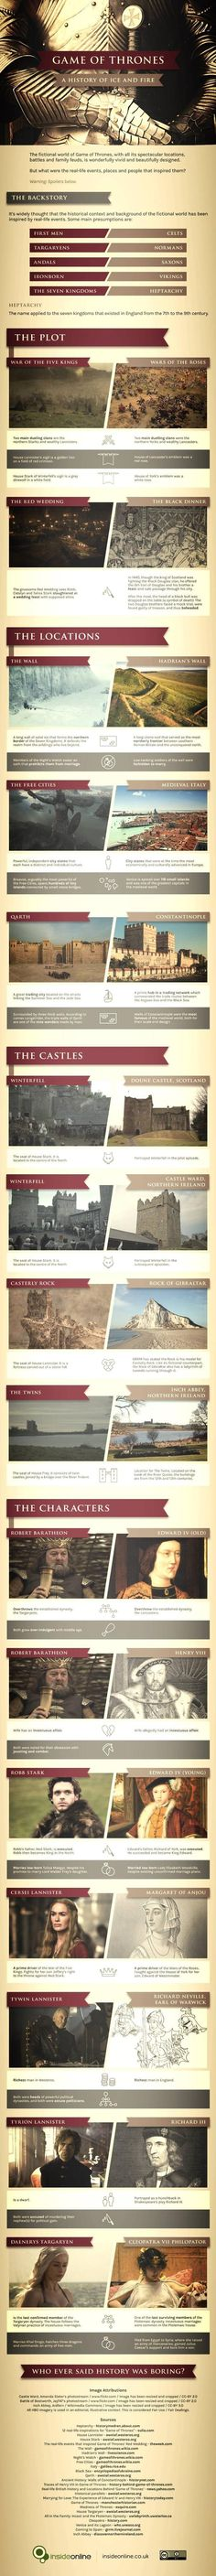 Game of Thrones Historical Inspiration.